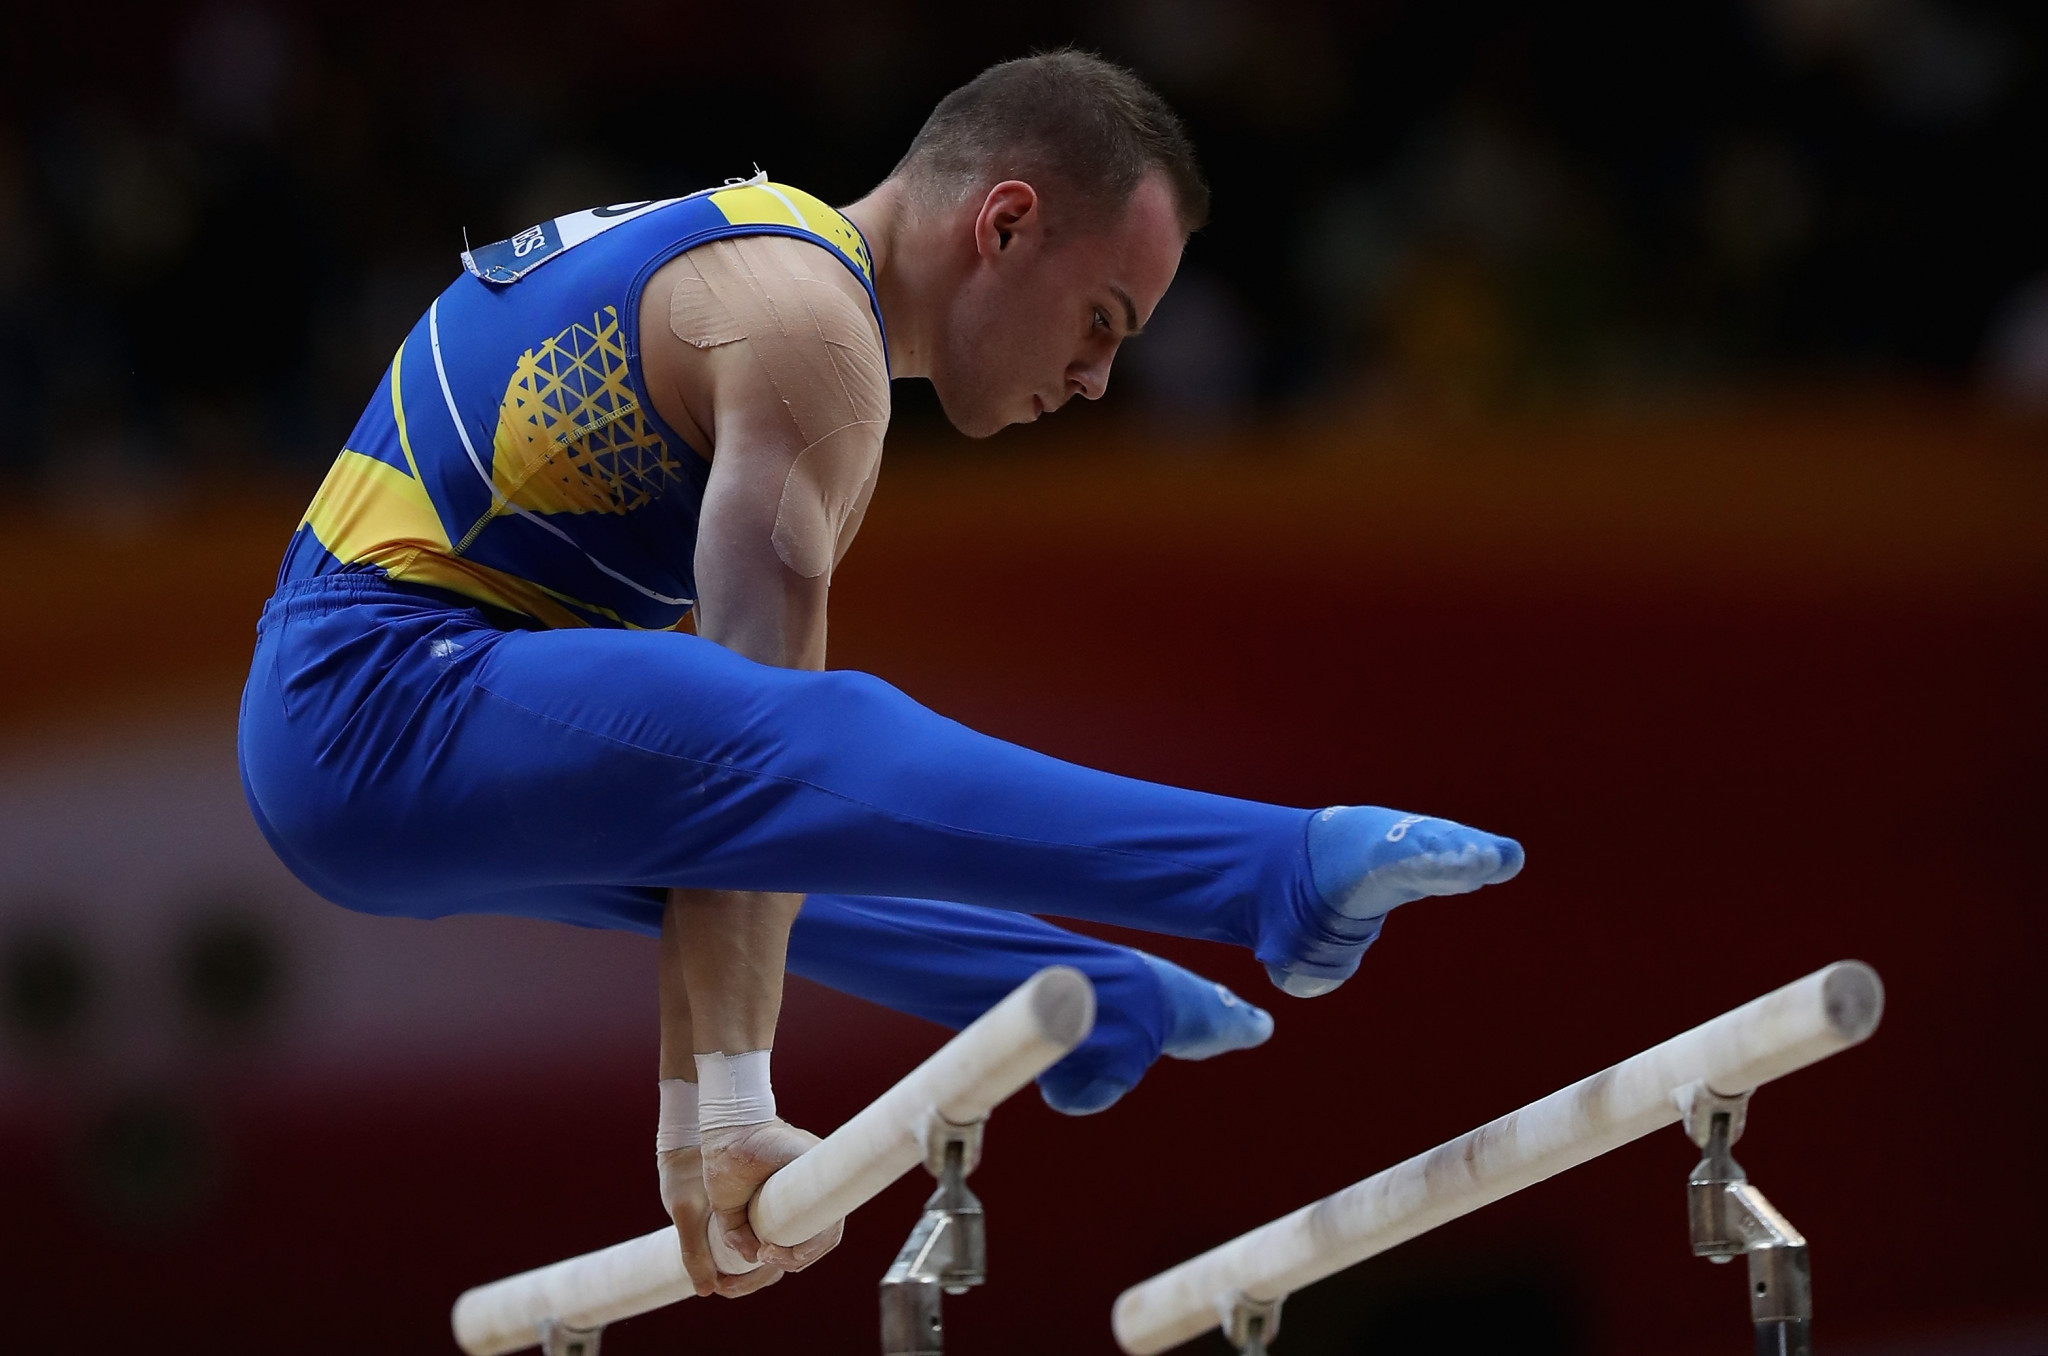 Gymnast Verniaiev named Ukrainian Olympic Committee's athlete of month for March